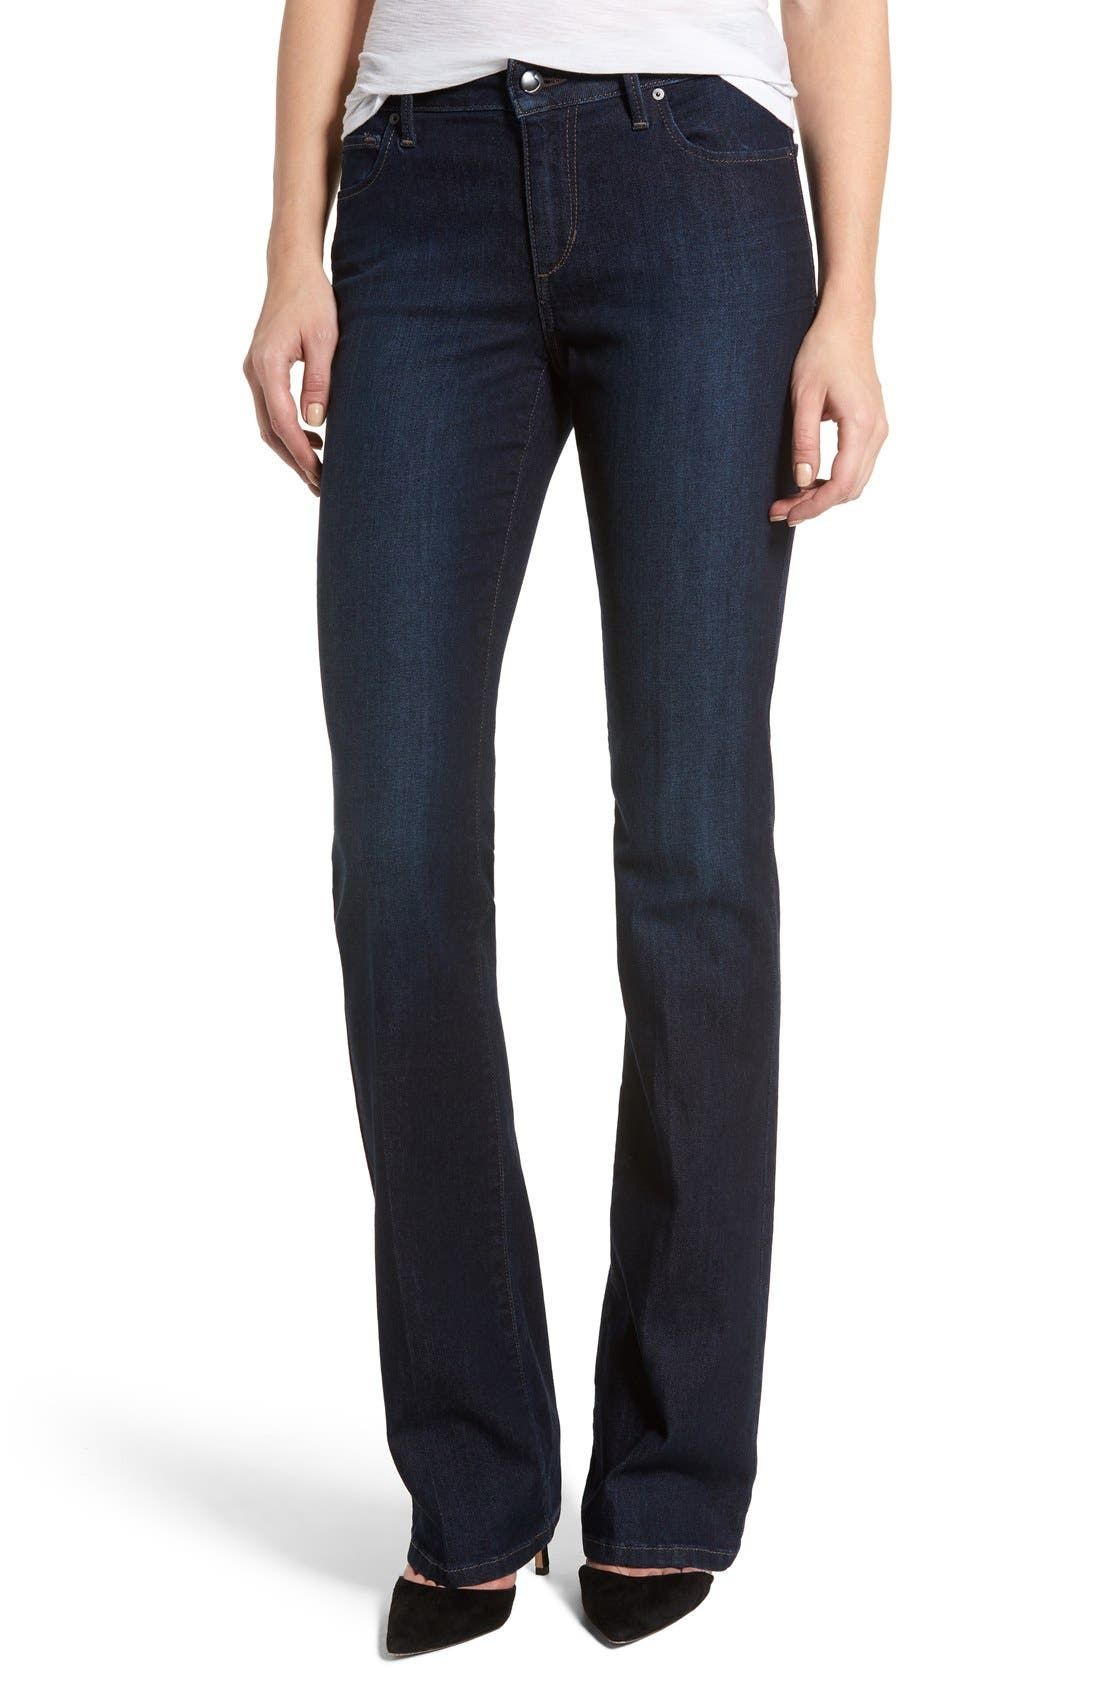 Alternate Image 1 Selected - Joe's Honey Curvy Bootcut Jeans (Loreyn)